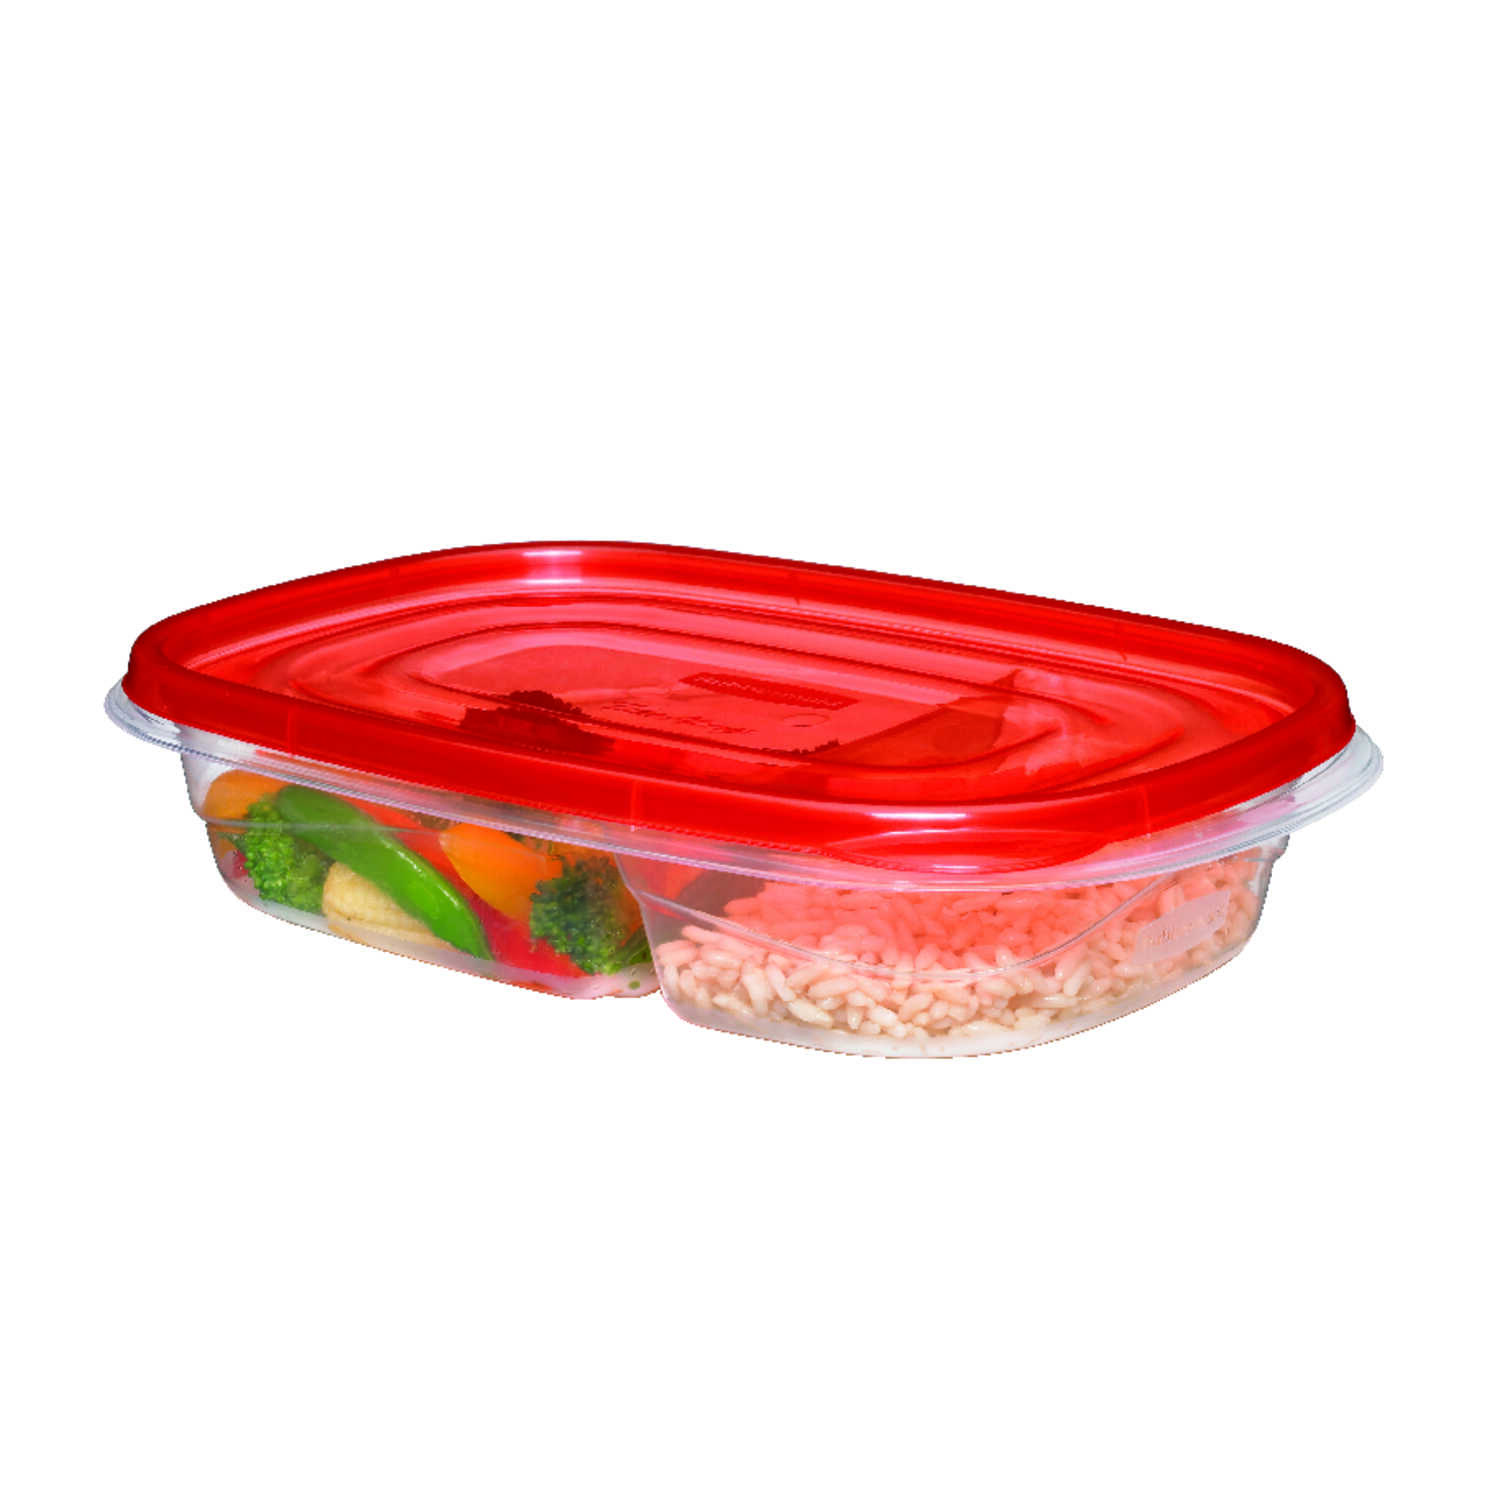 Rubbermaid  Food Storage Container  3.7 cups